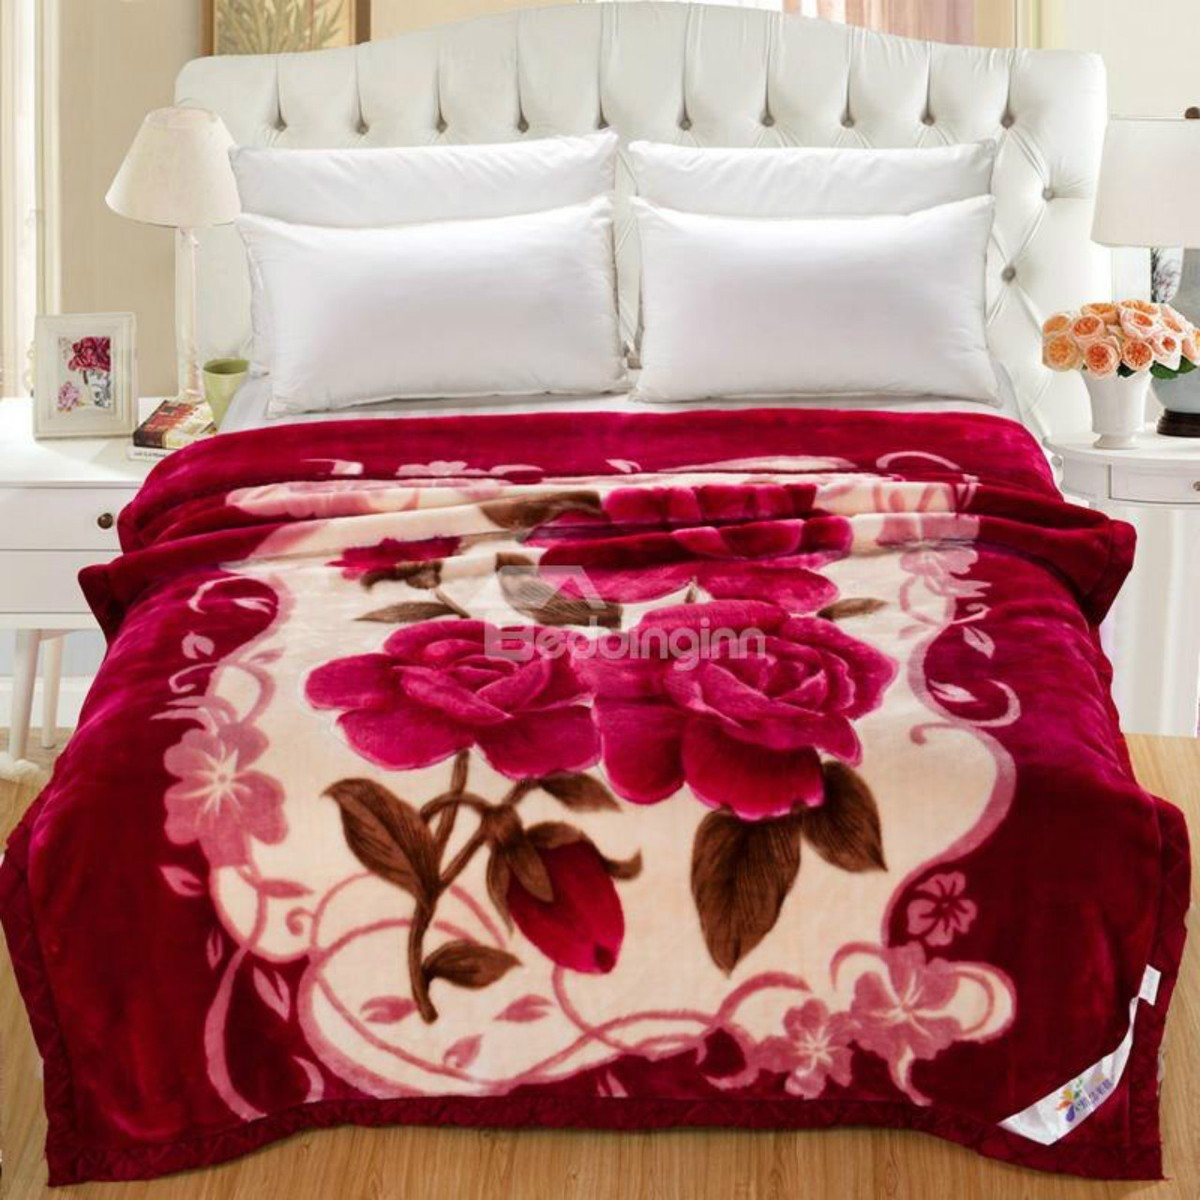 Rose Red Flowers Printed Flannel Fleece Bed Blankets